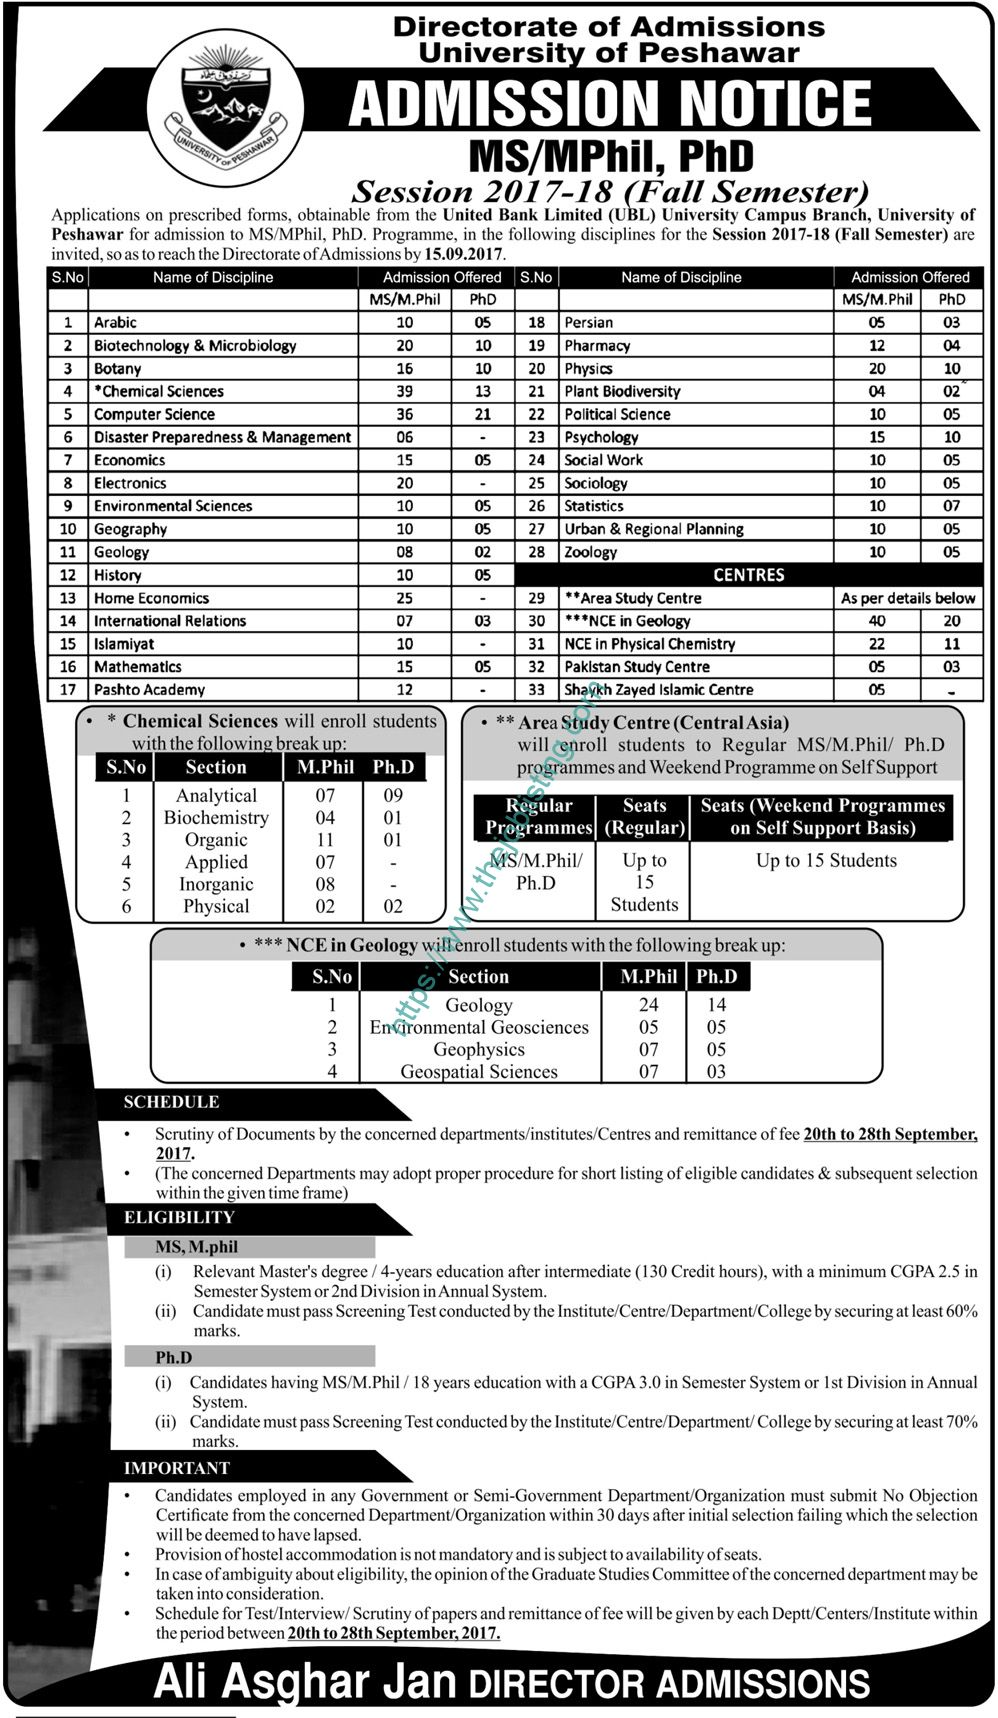 University of Peshawar admission